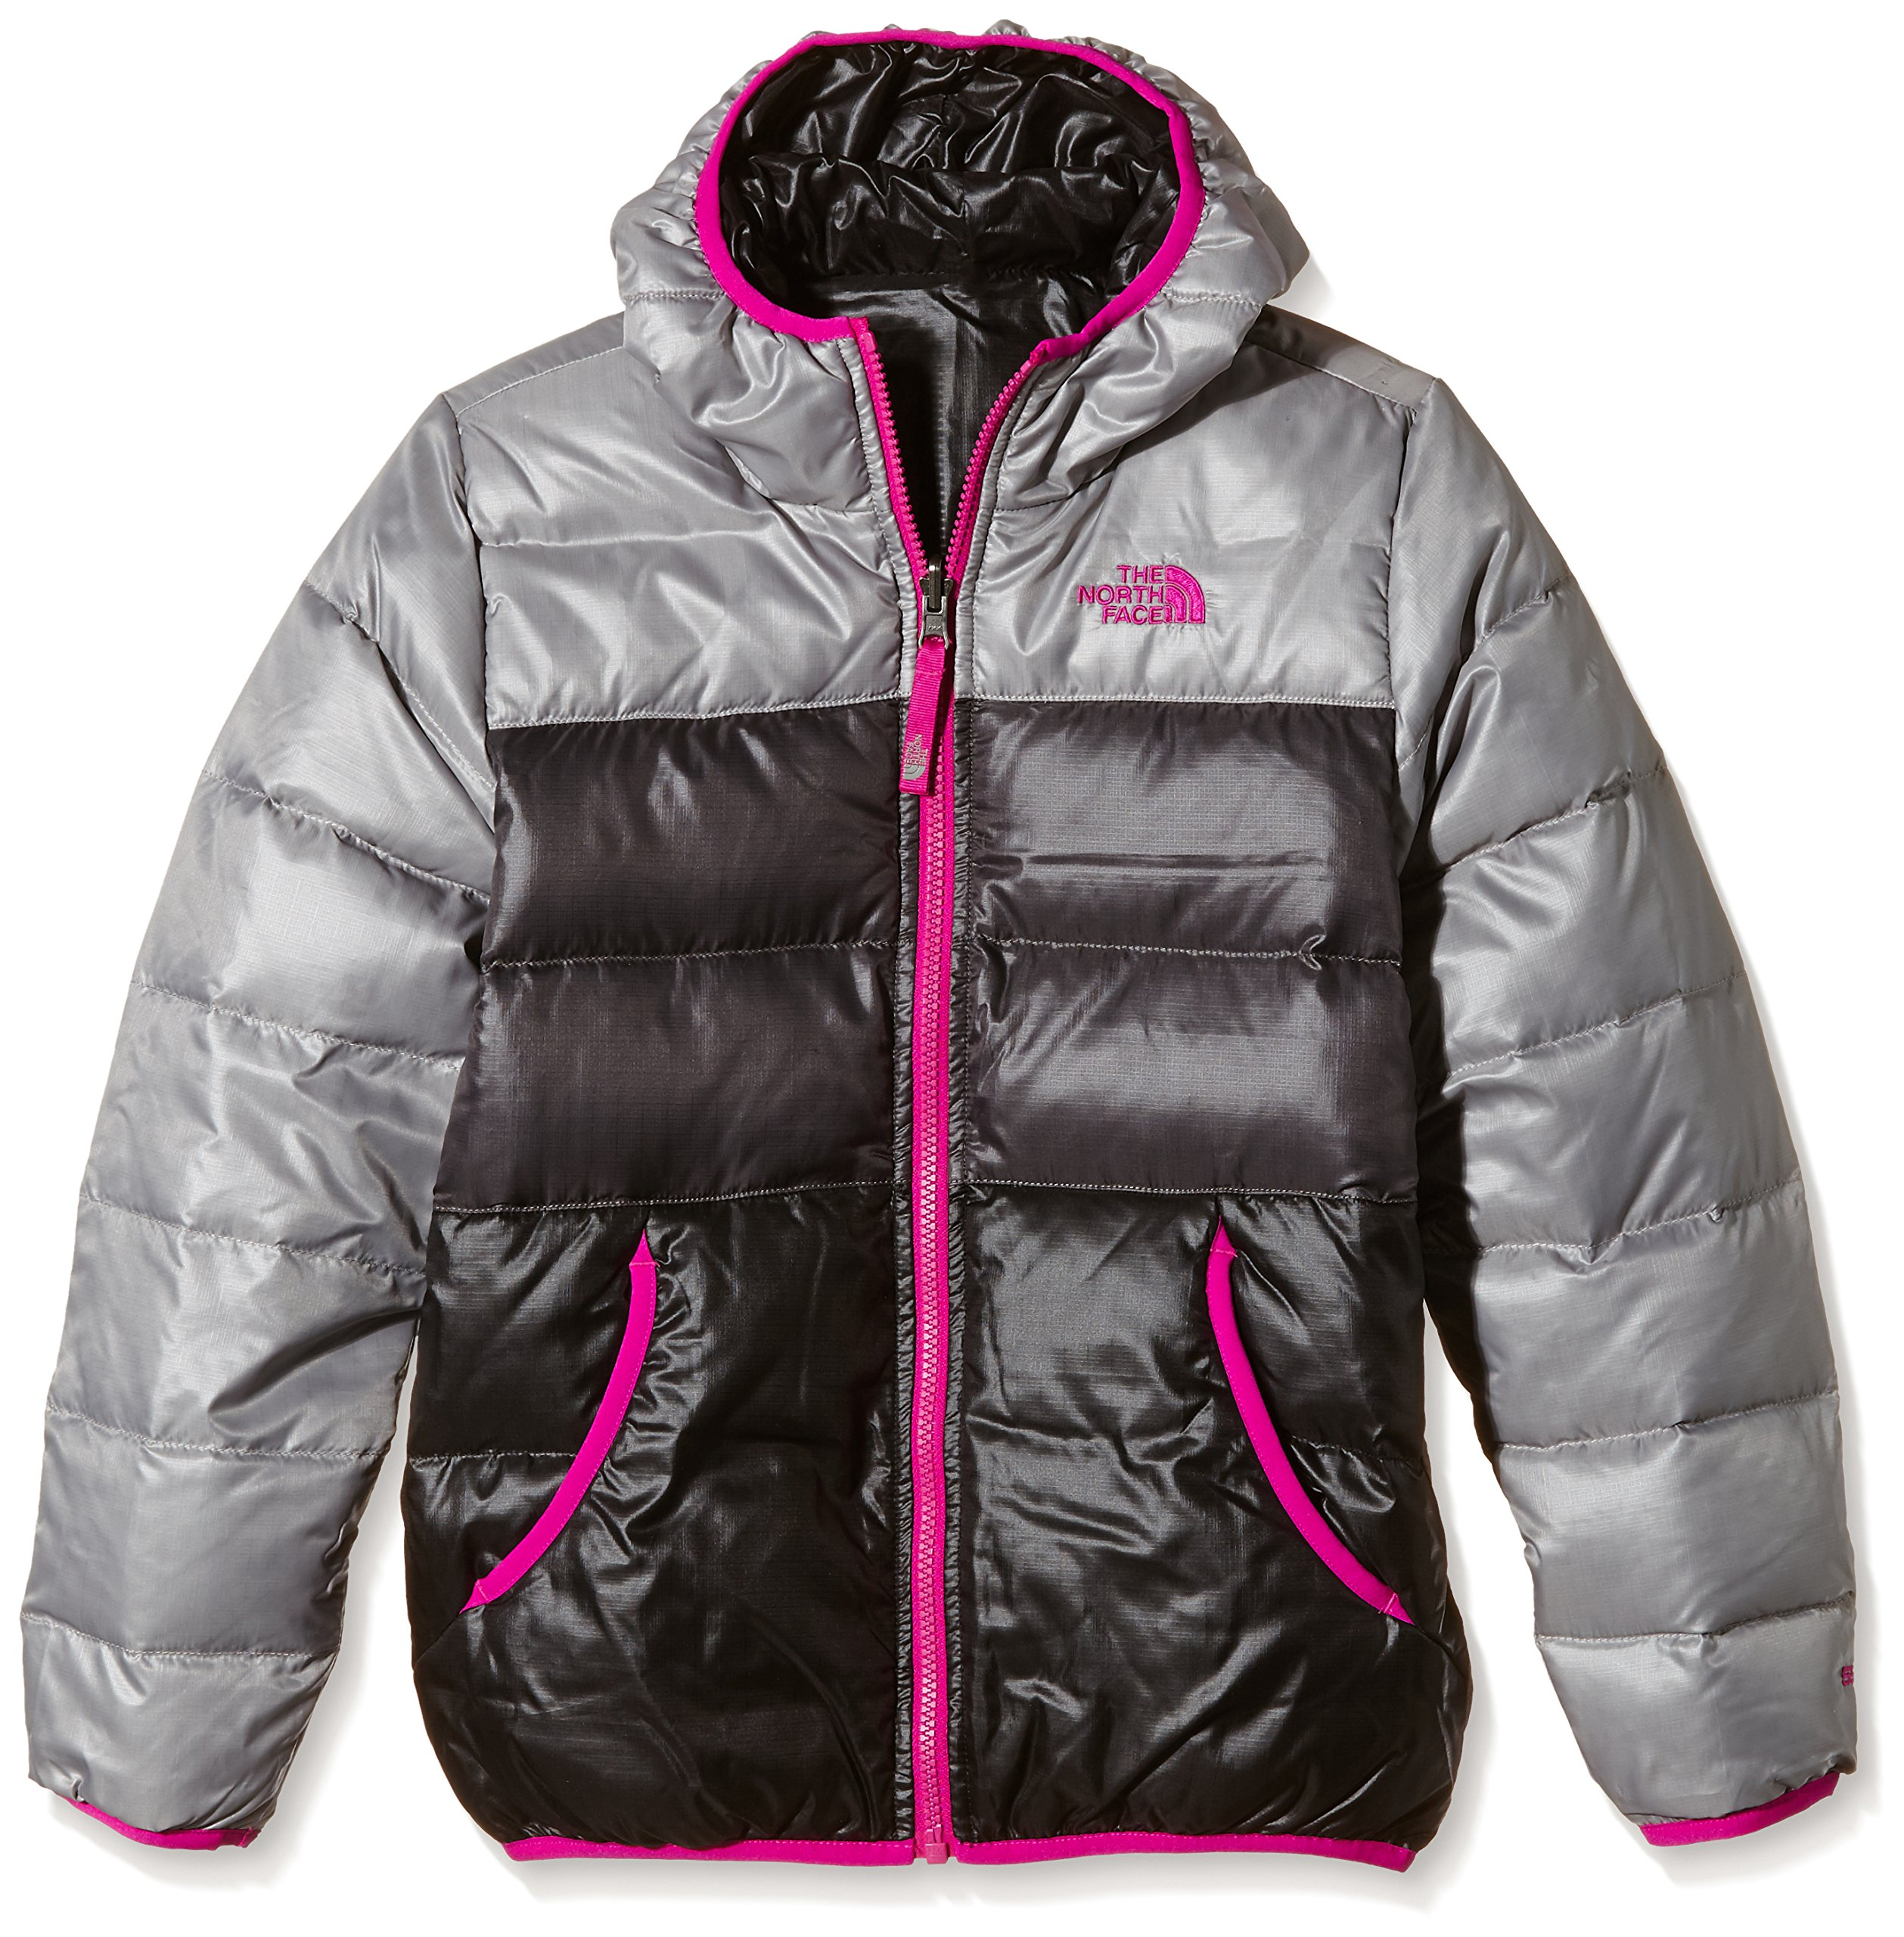 The North Face Kids Girl's Reversible Moondoggy Jacket (Little Kids/Big Kids) Metallic Silver Outerwear XL (18 Big Kids) by The North Face